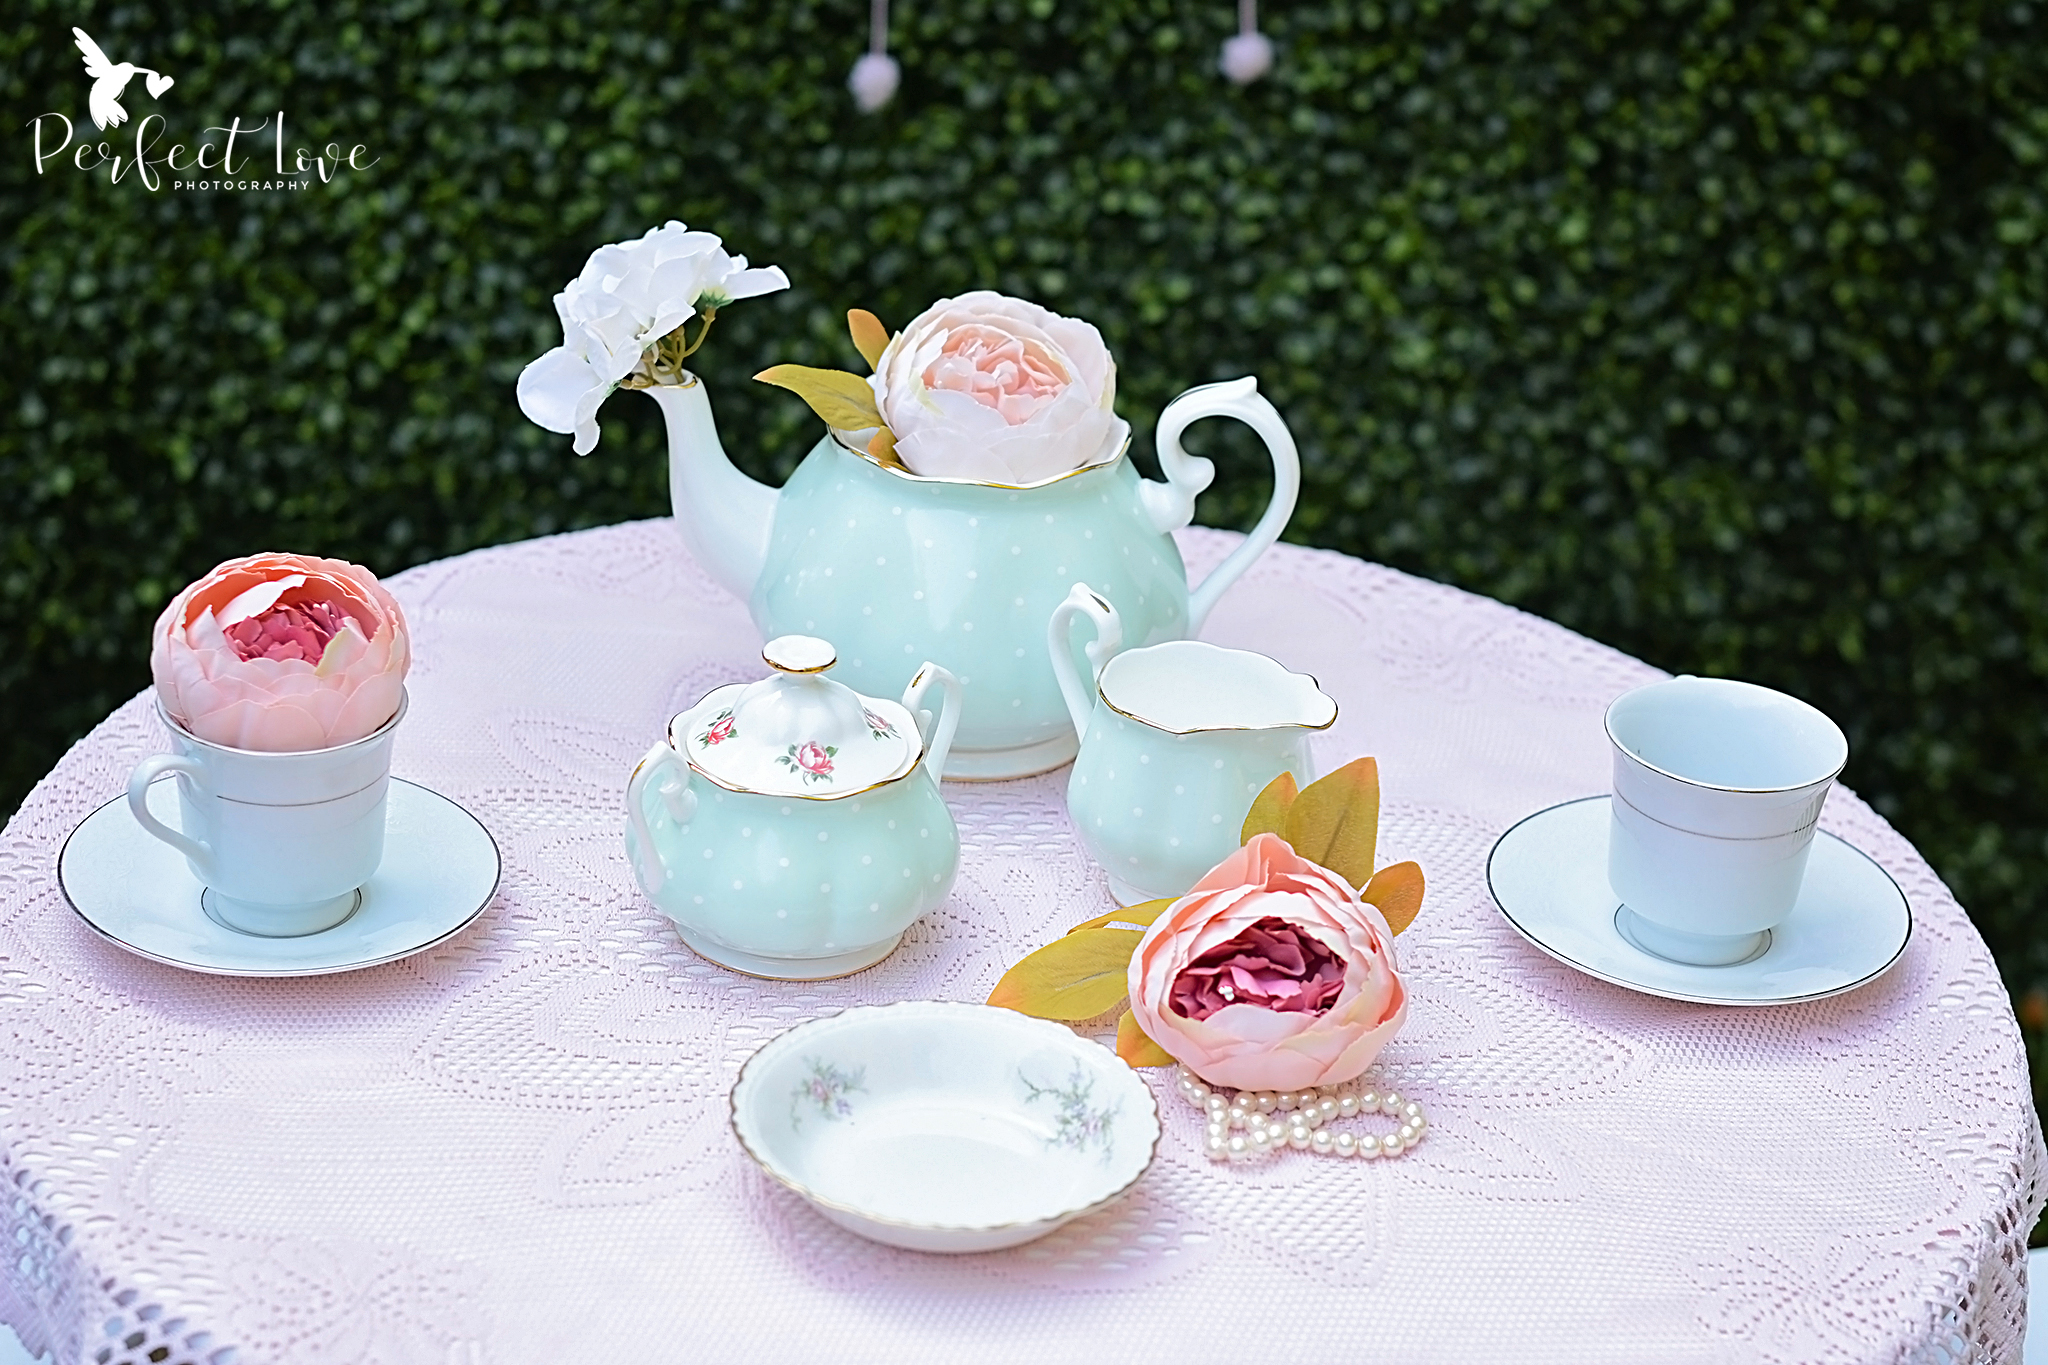 When I saw this Royal Albert Tea Set, I just had to have it! I love the vintage pattern of the set.